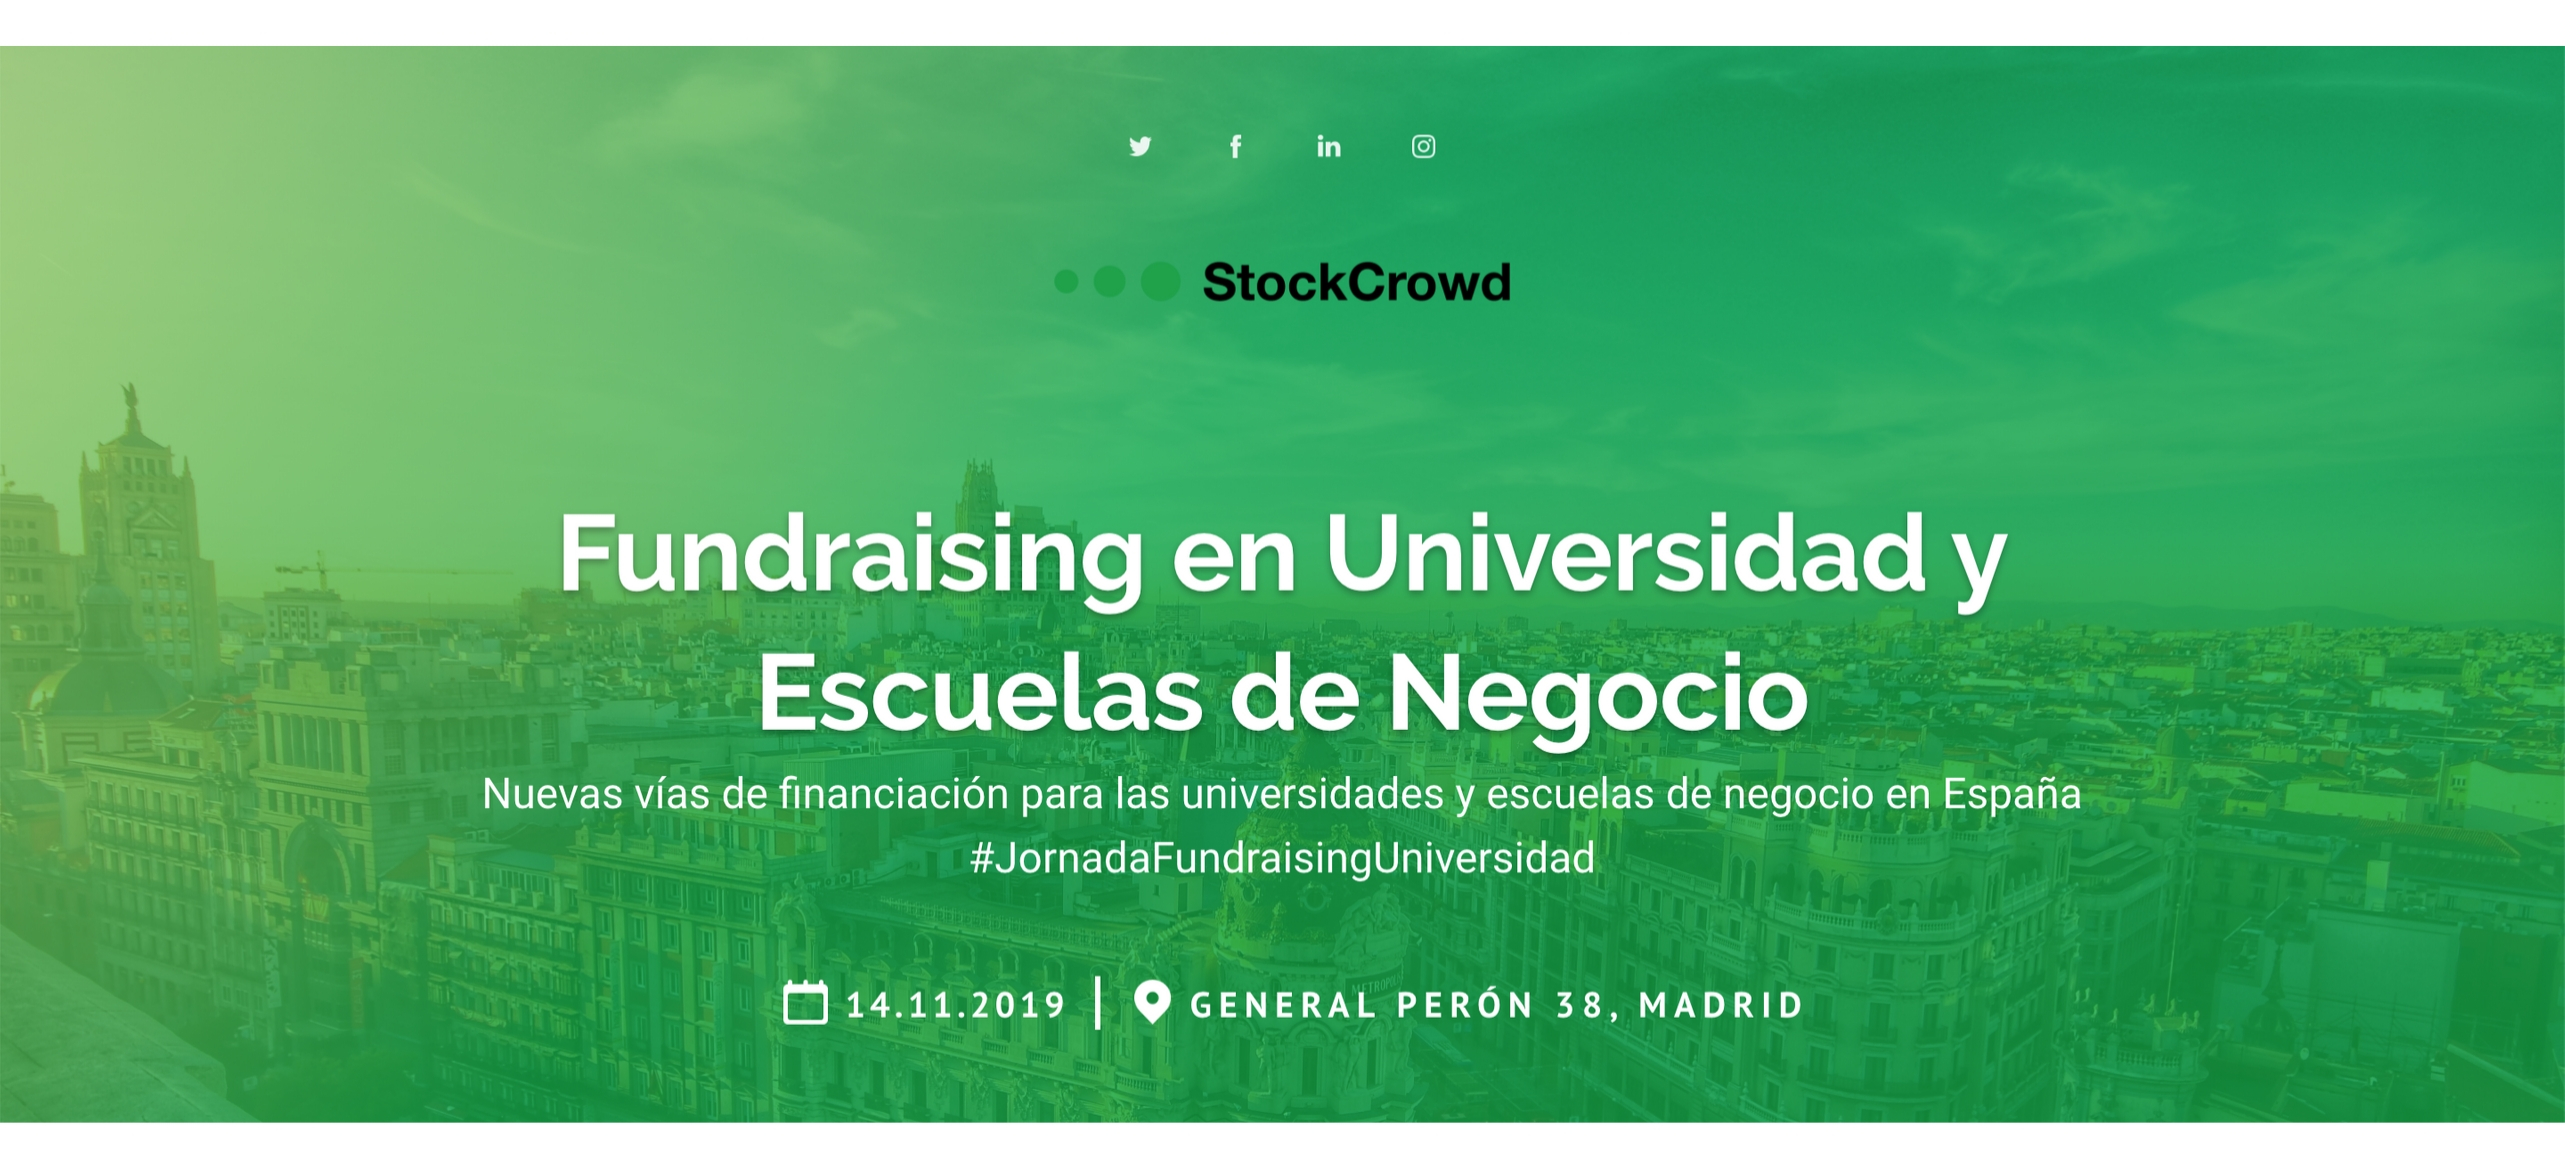 evento-fundraising-universidad